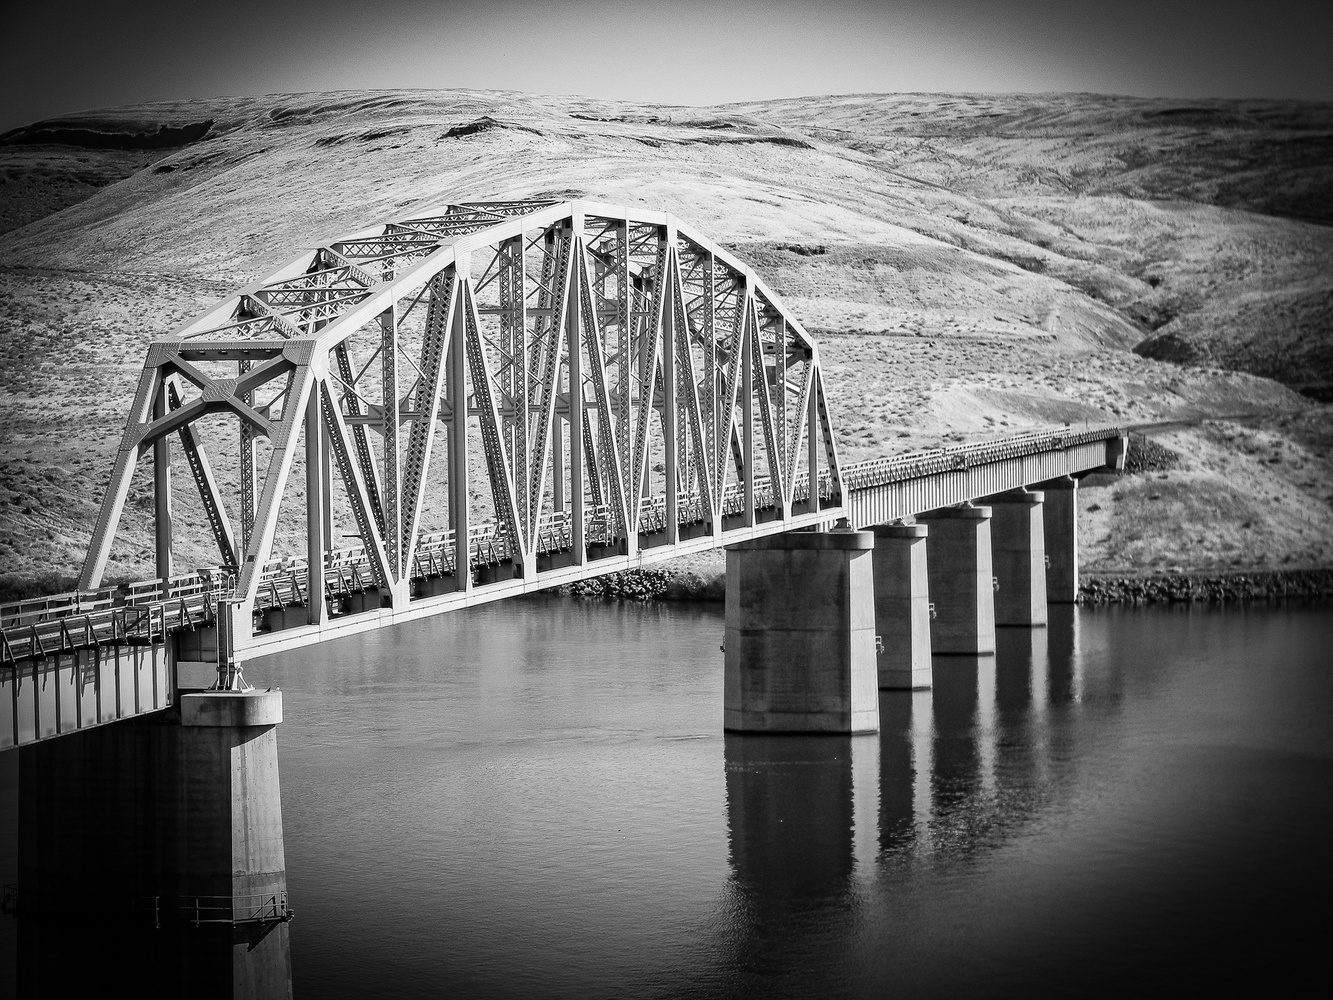 Crossing over to the other side by Chris Snyder